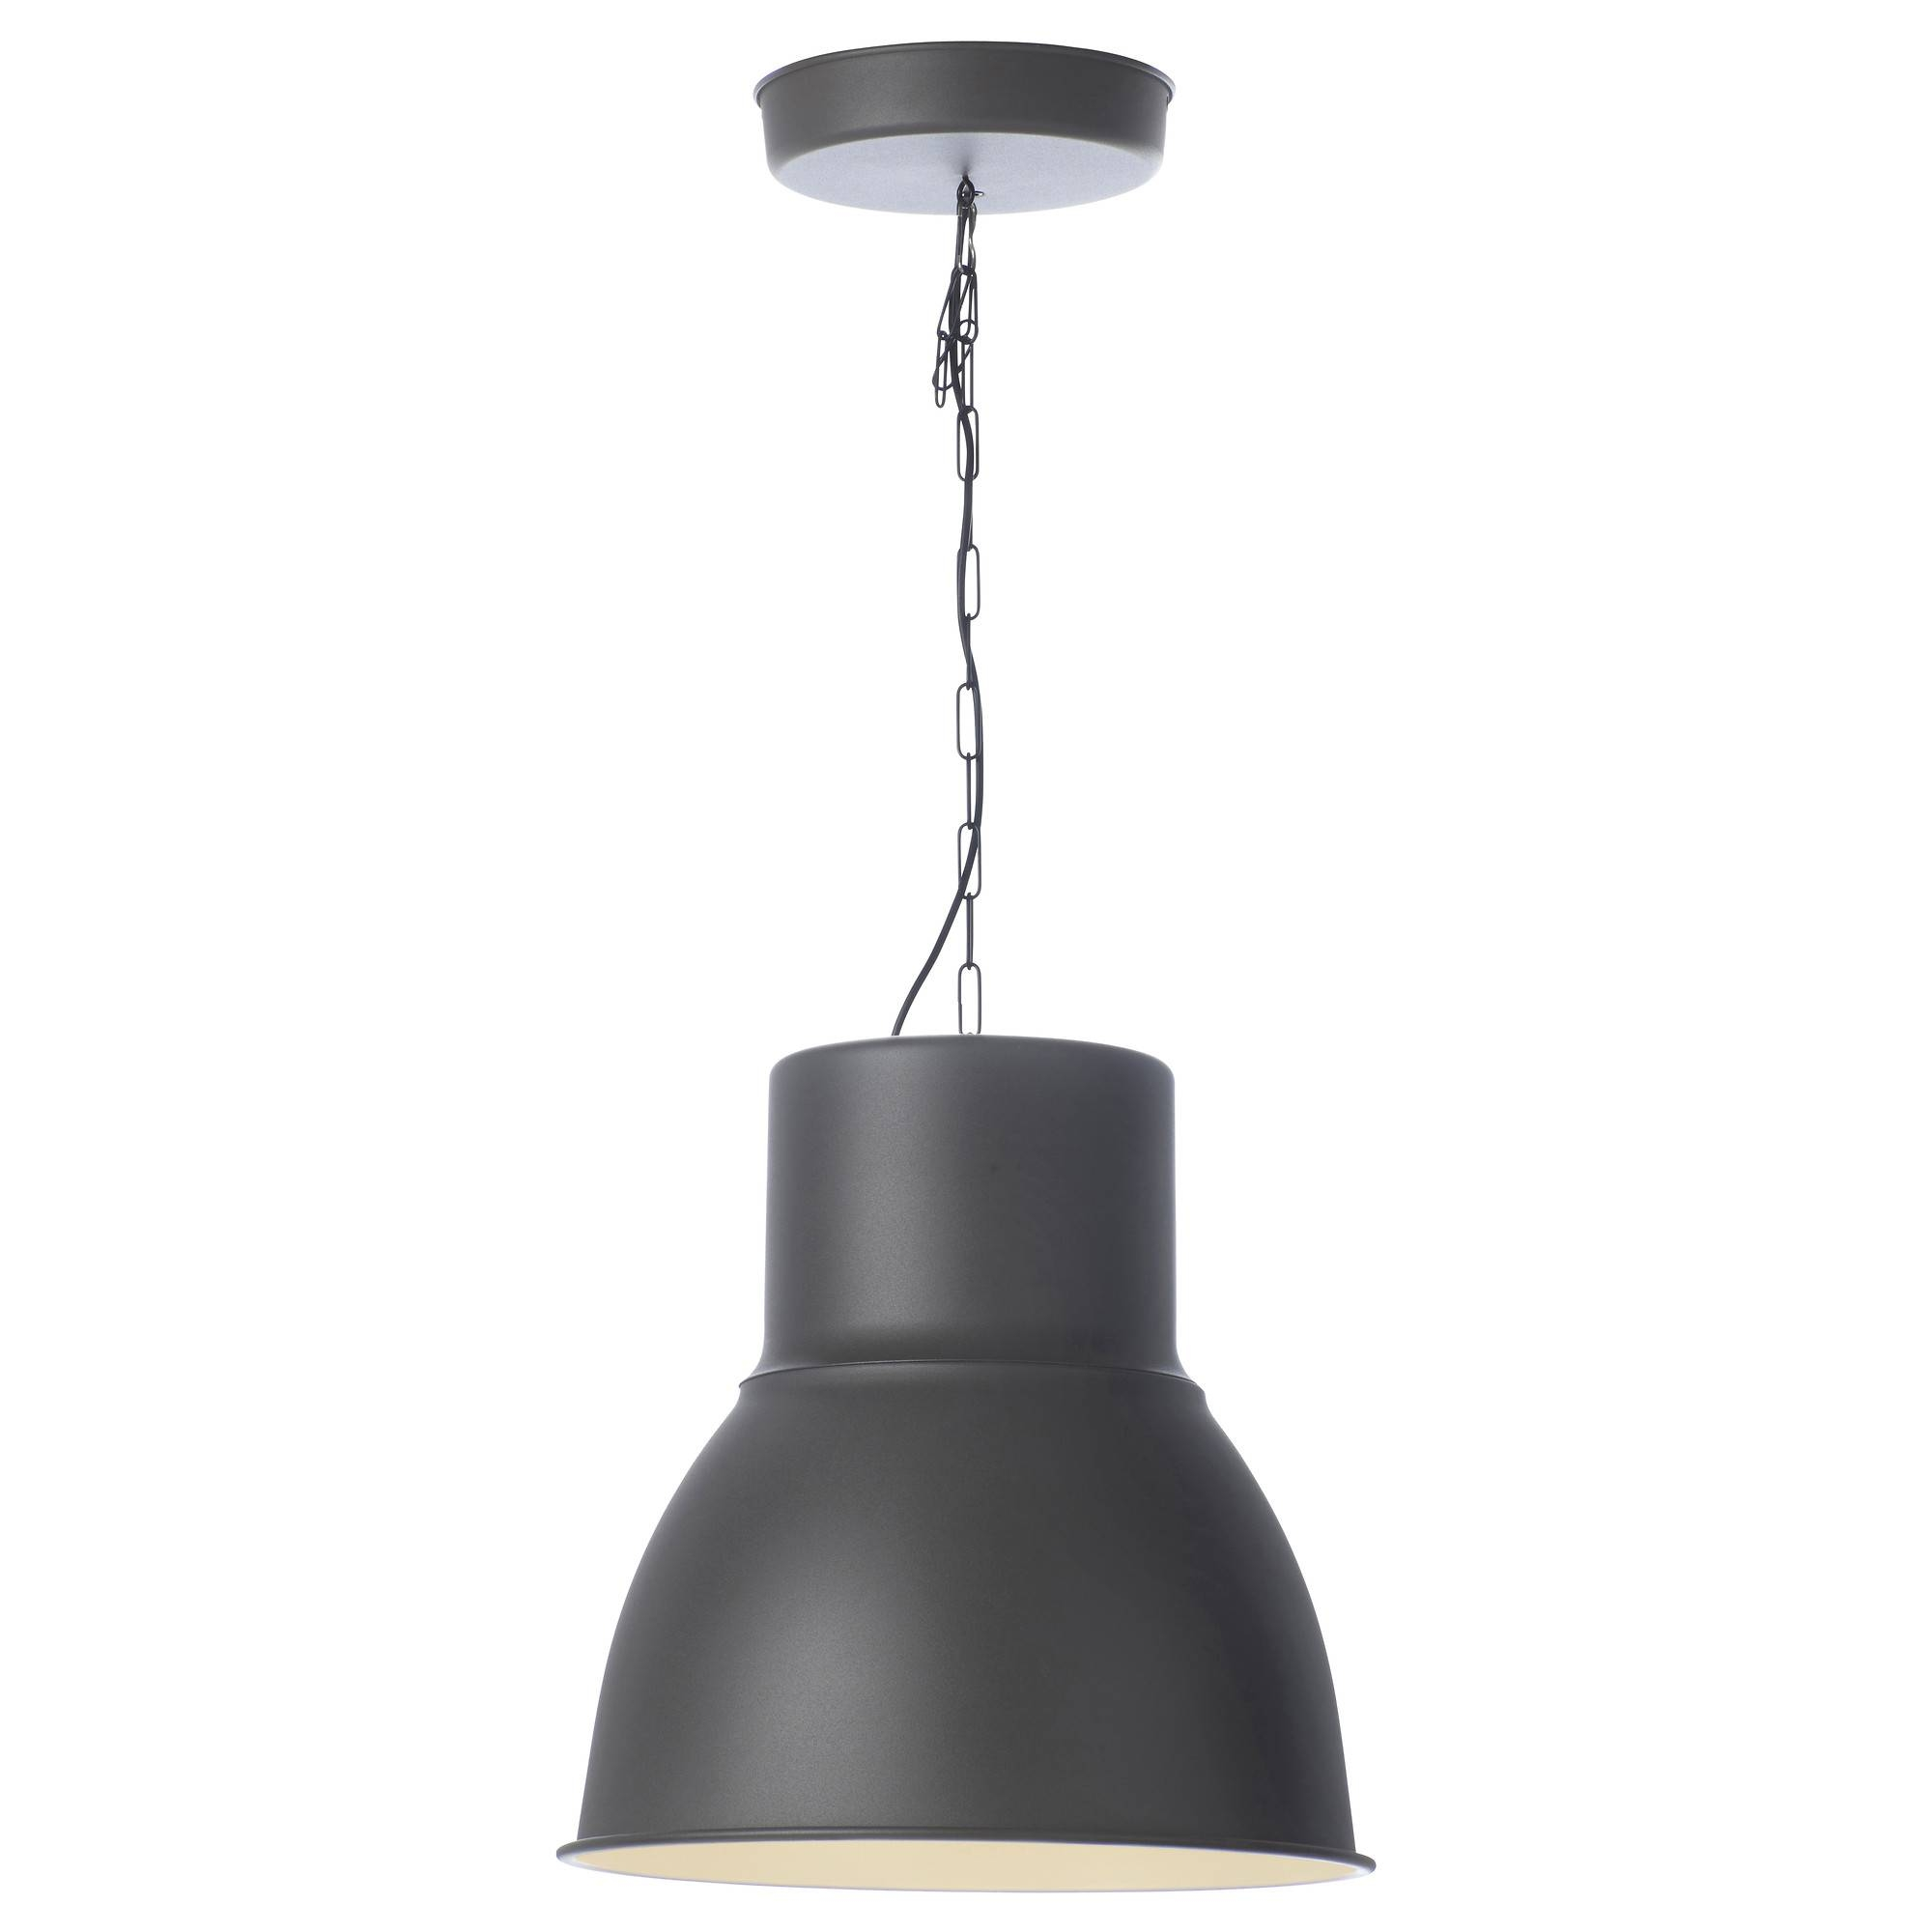 Hektar Pendant Lamp Dark Grey 47 Cm - Ikea intended for Ikea Hanging Lights (Image 8 of 15)